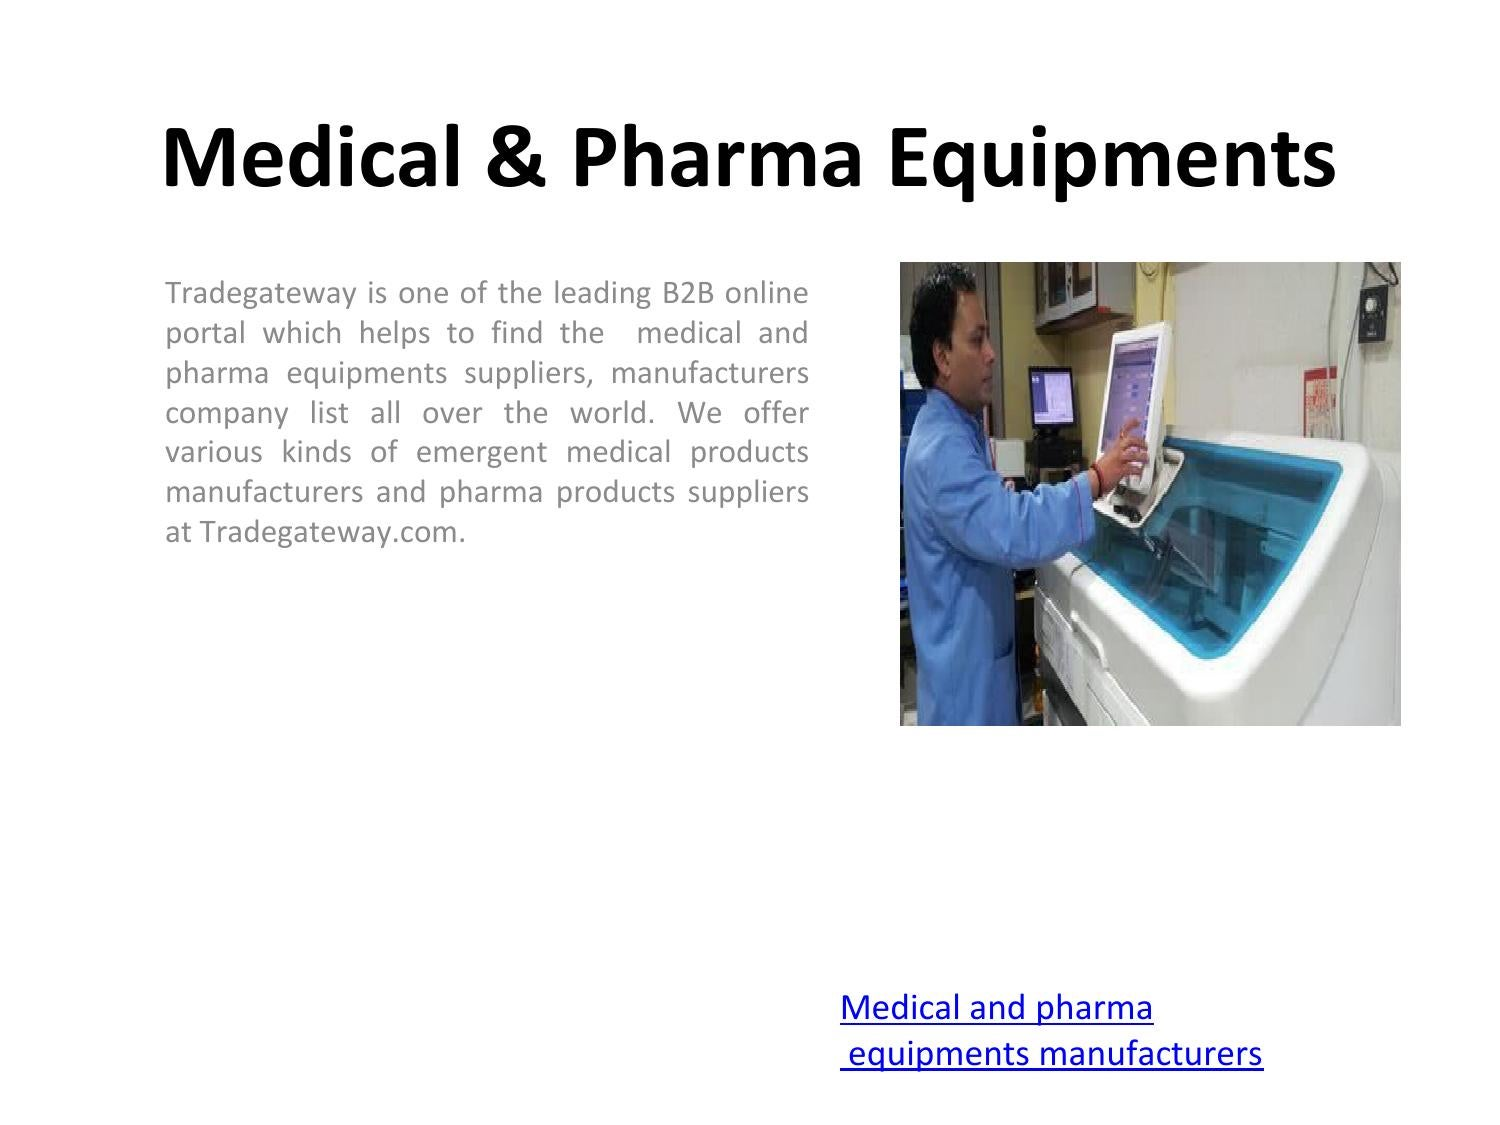 Medical & Pharma Equipments Manufacturers by Md Malik - issuu